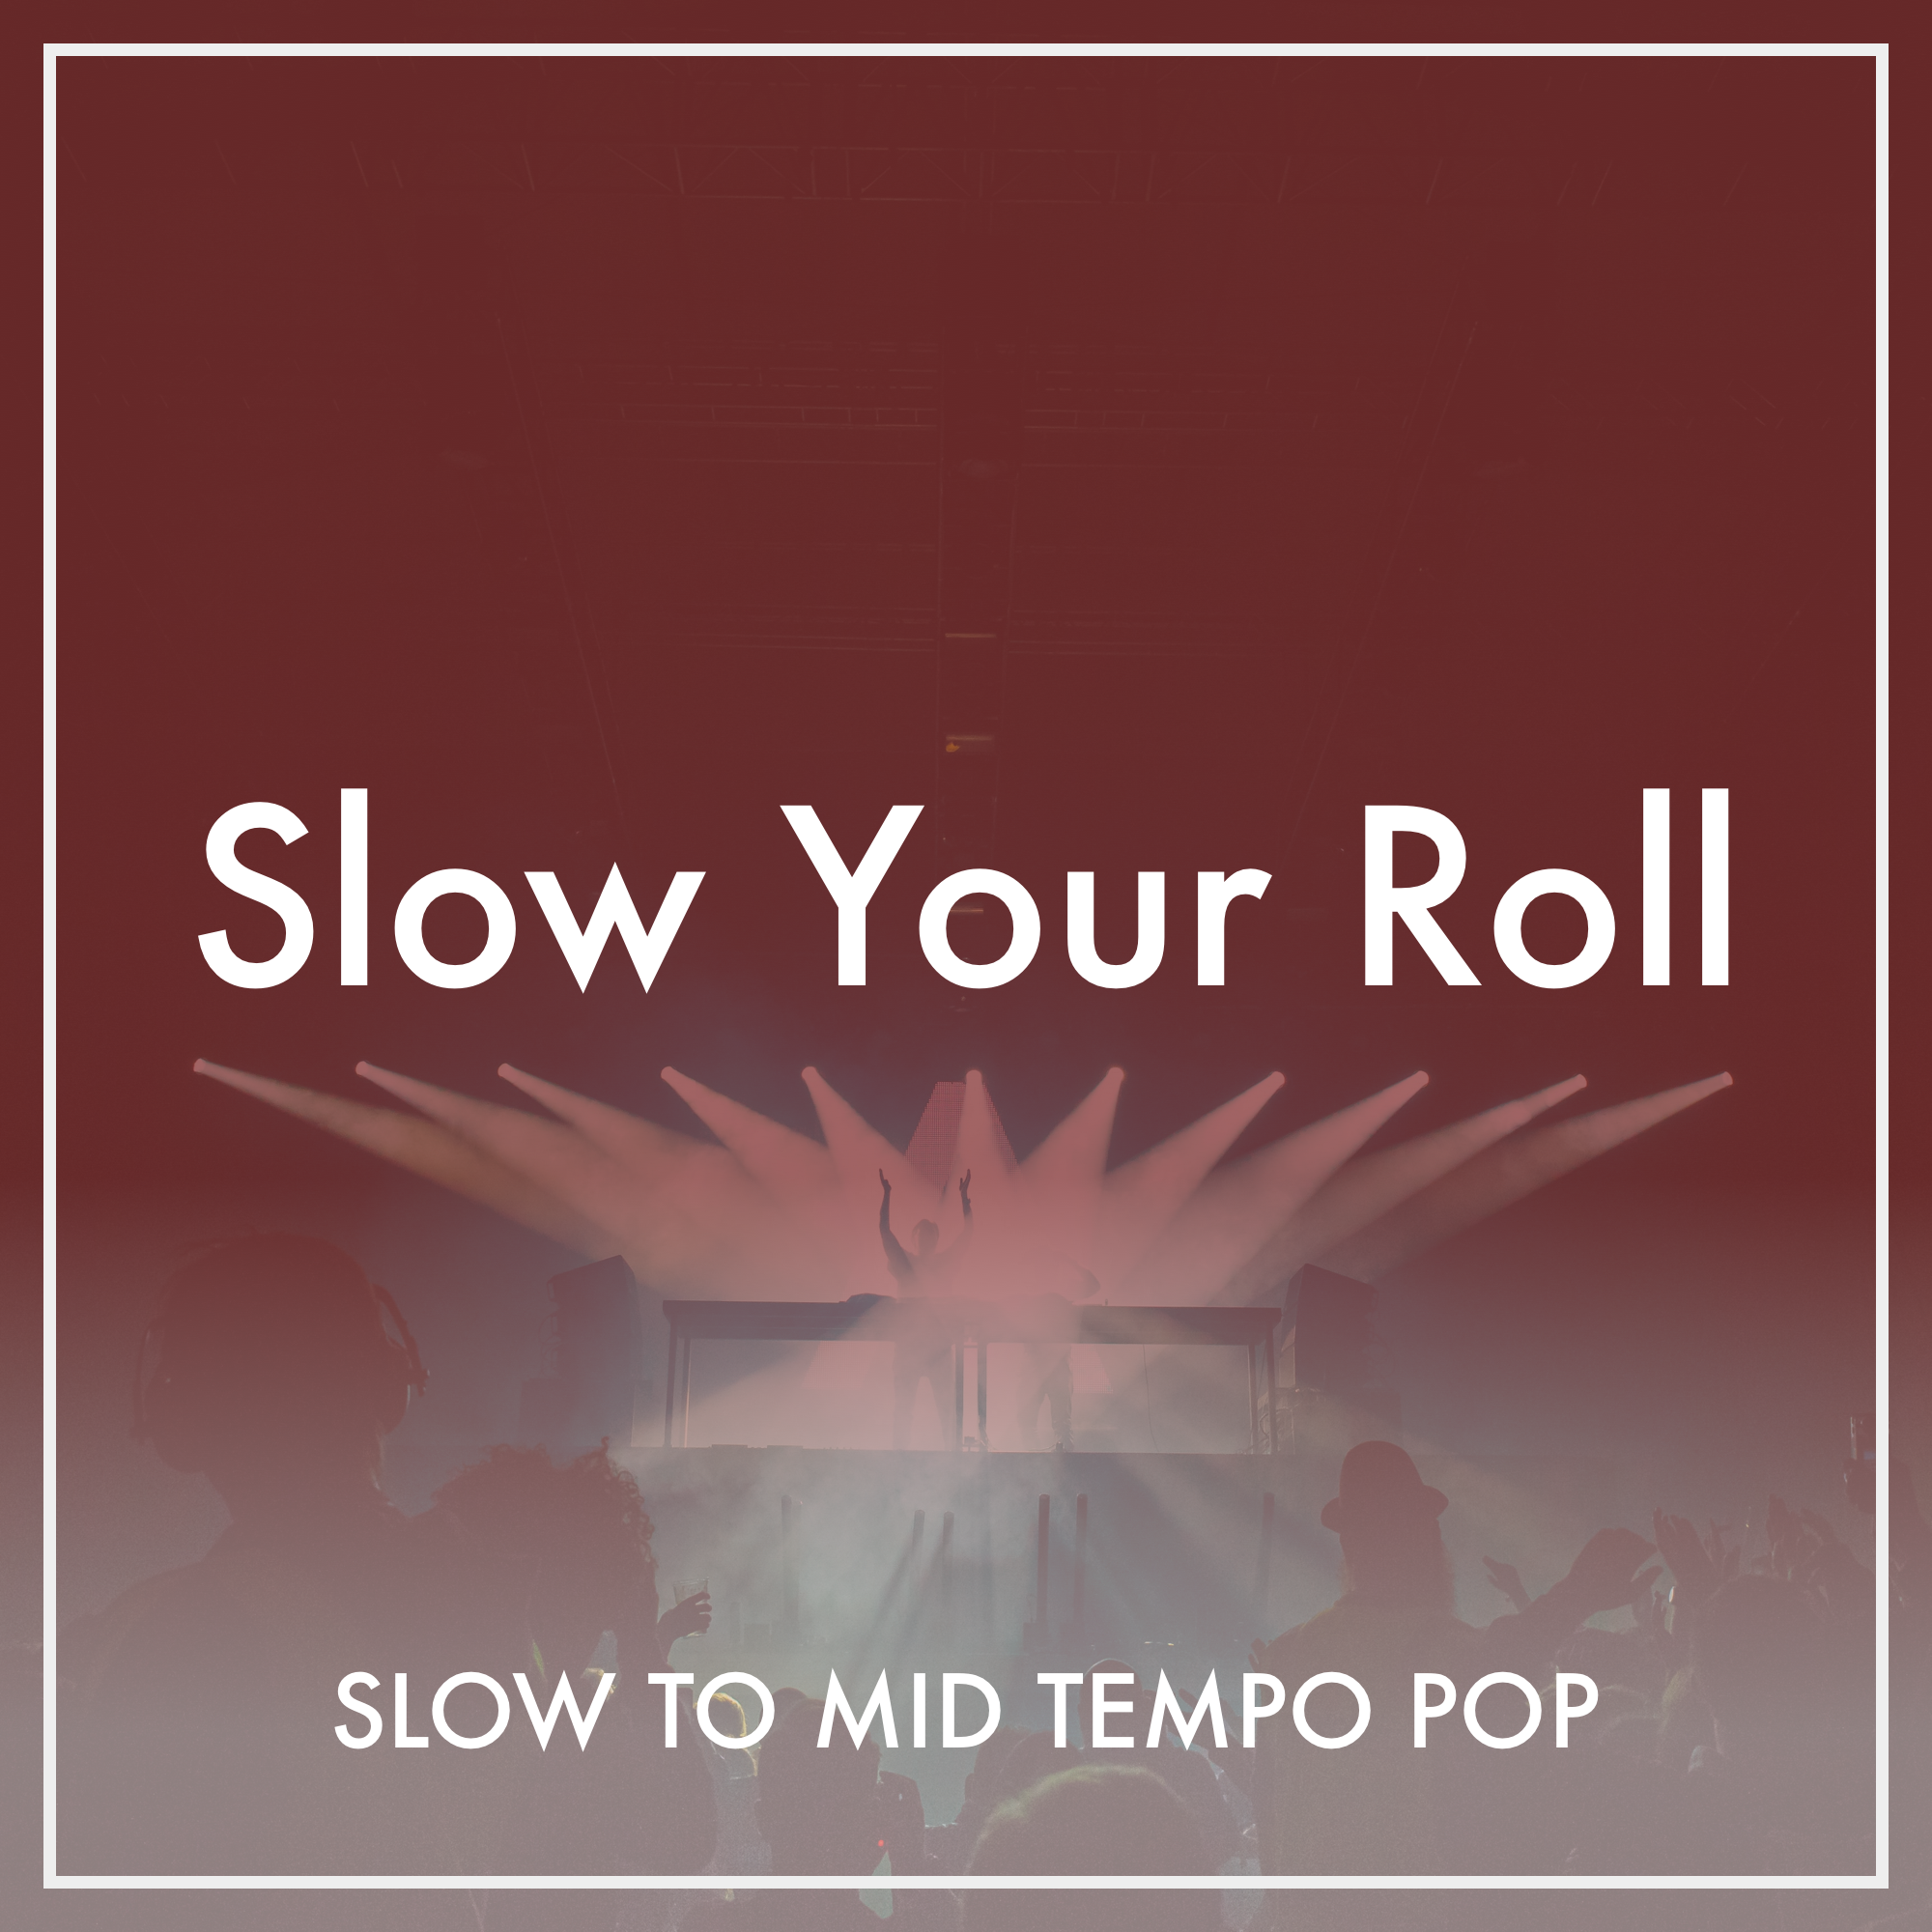 Slow to Mid Tempo Pop by John Coggins